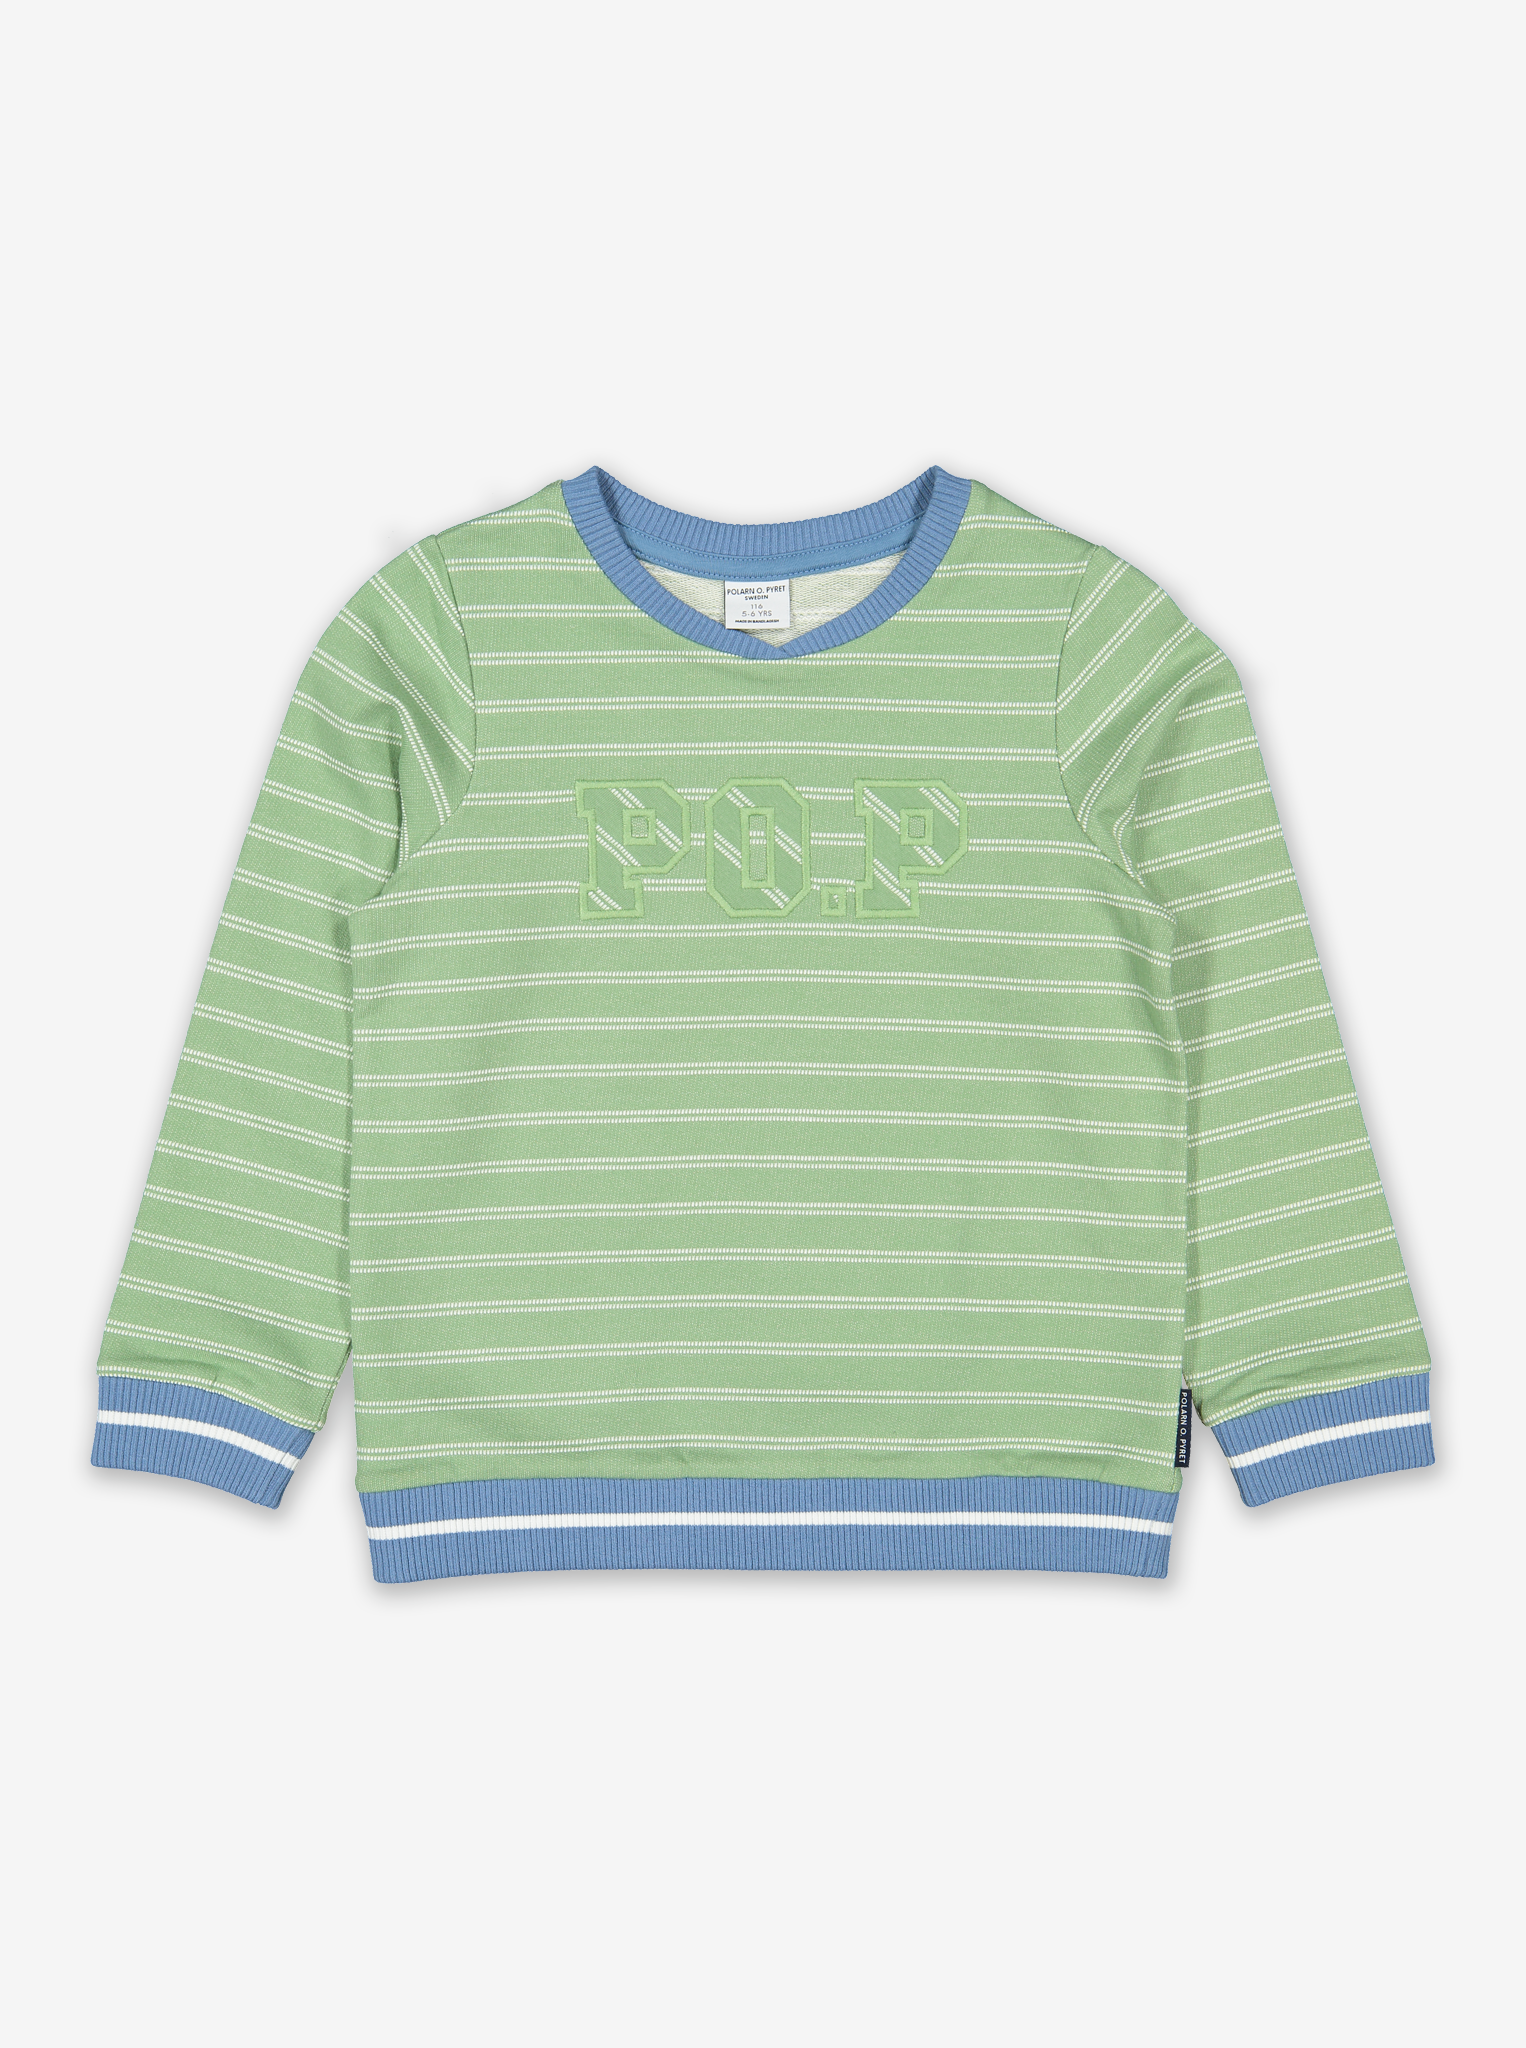 Po.P Stripe Kids Sweatshirt-Boy-1-6y-Green